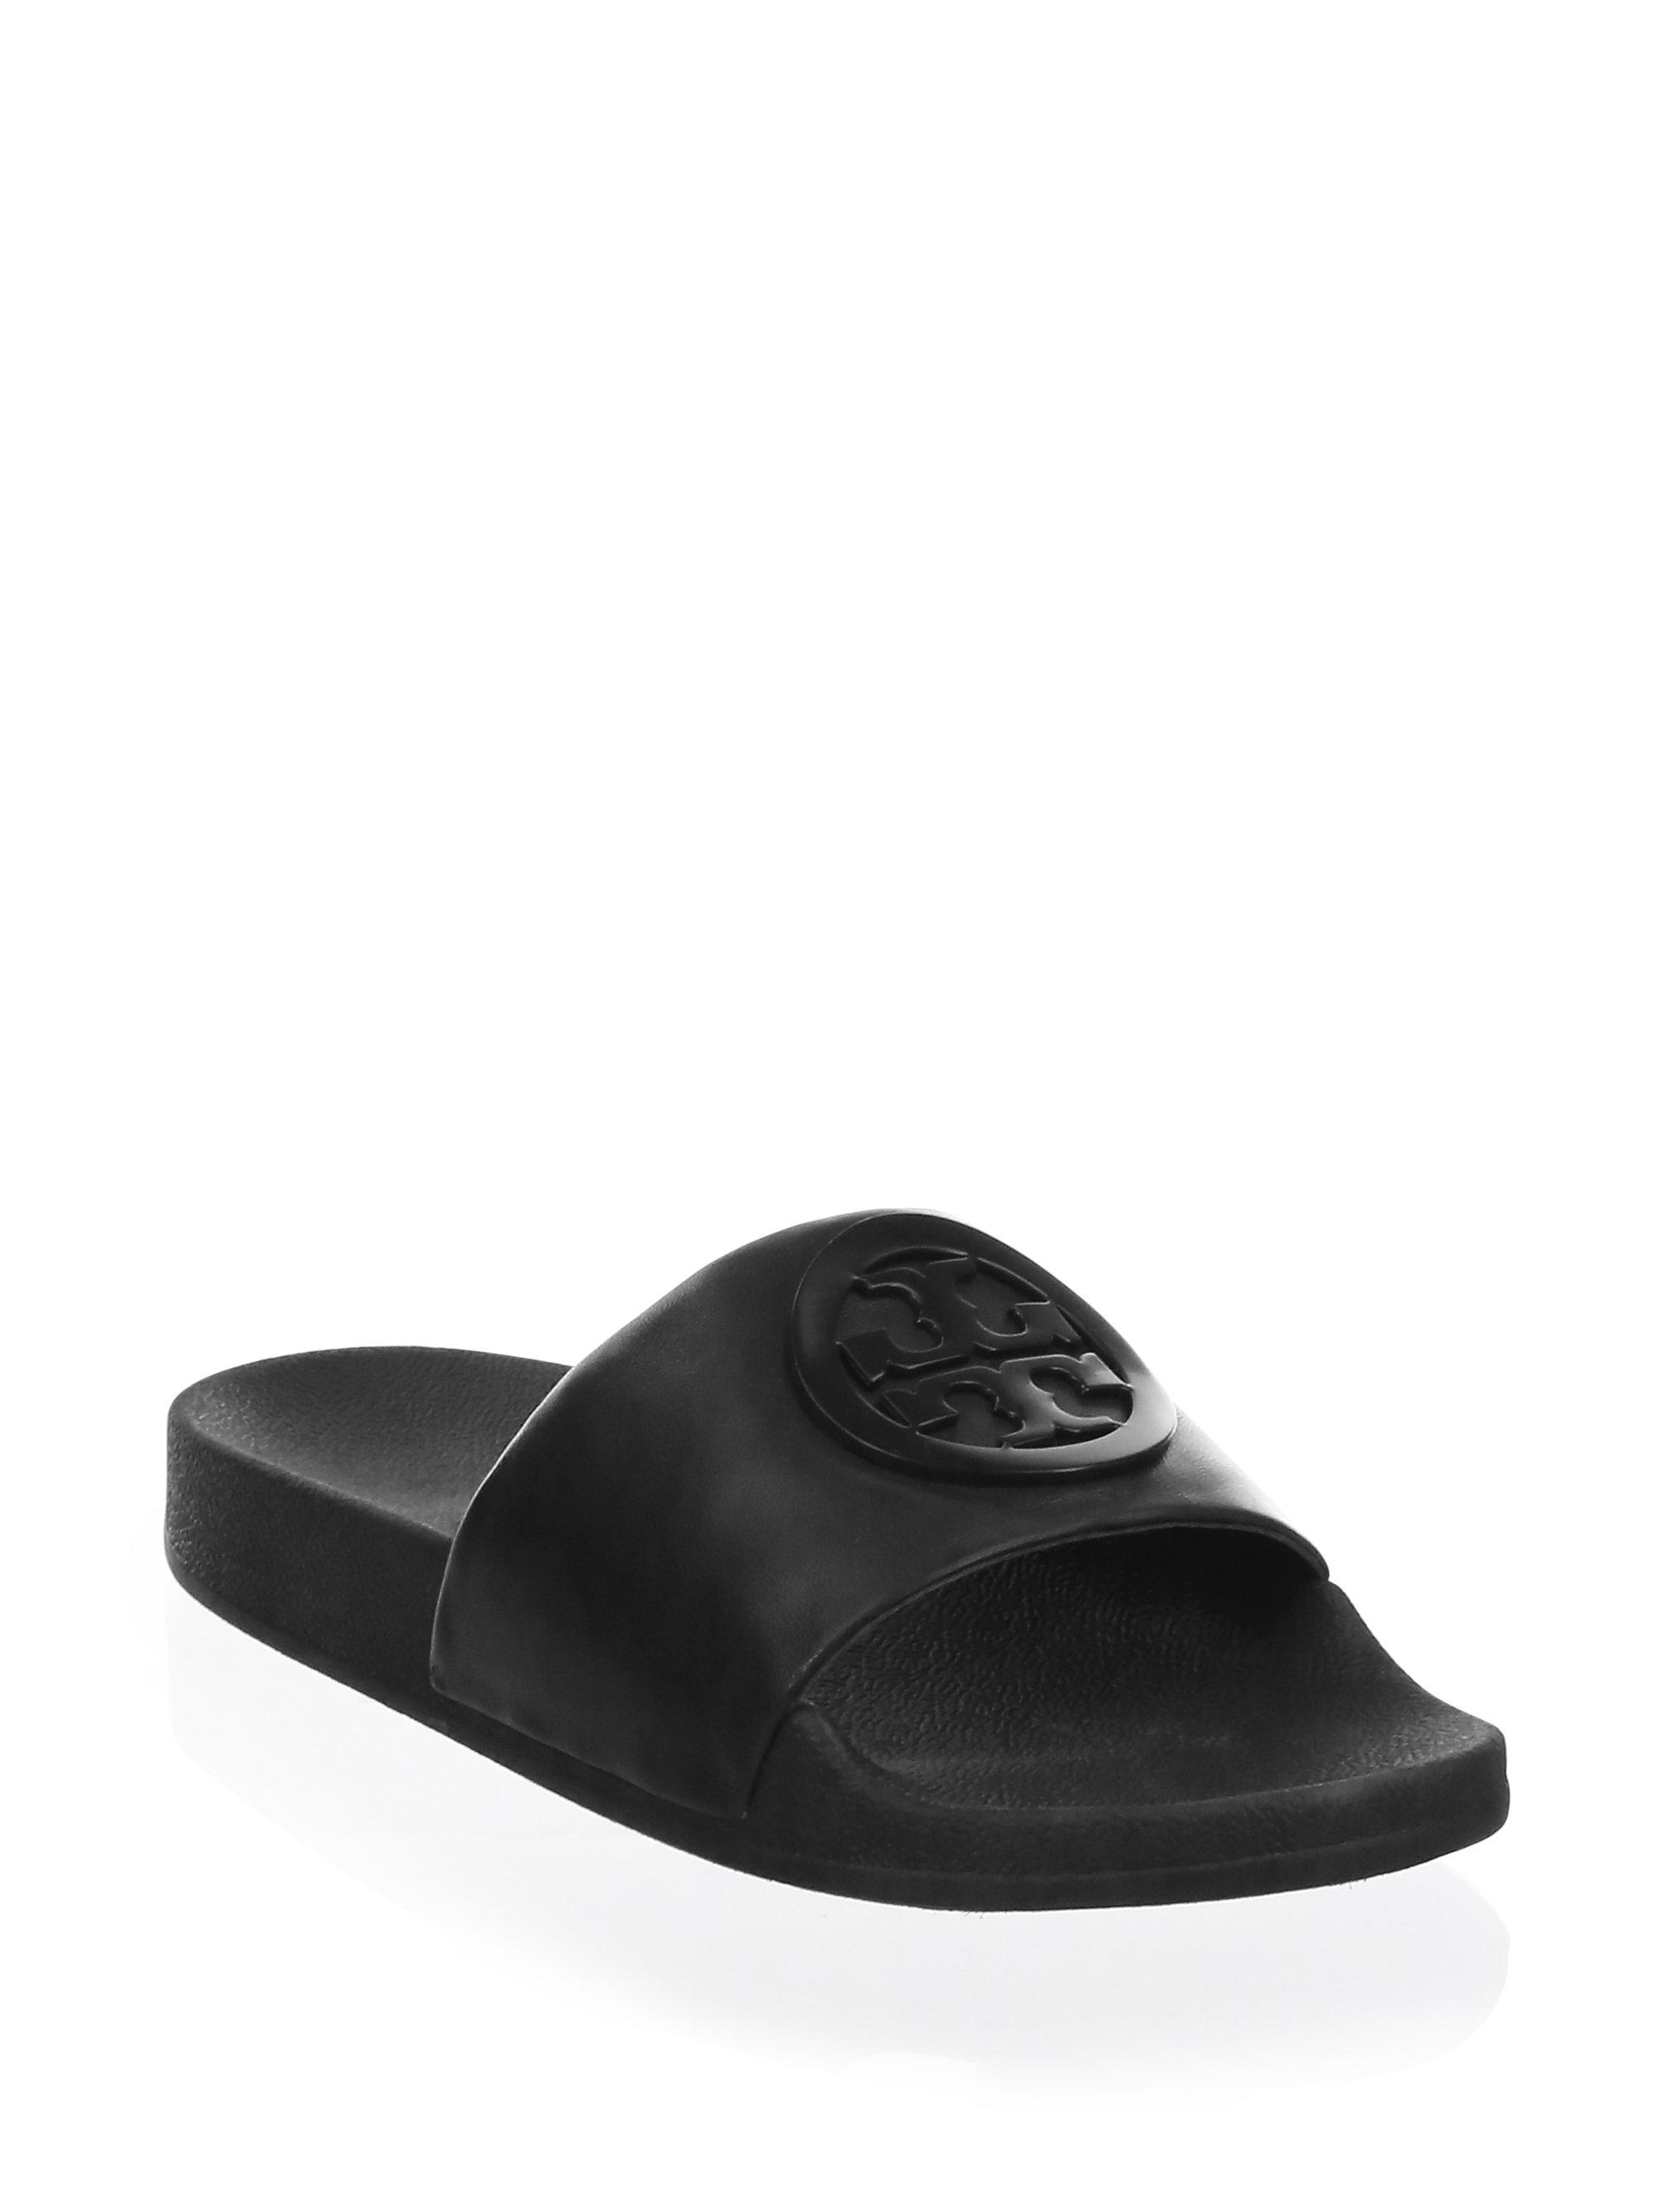 89c616c7fbaa Lyst - Tory Burch Lina Leather Slides in Black